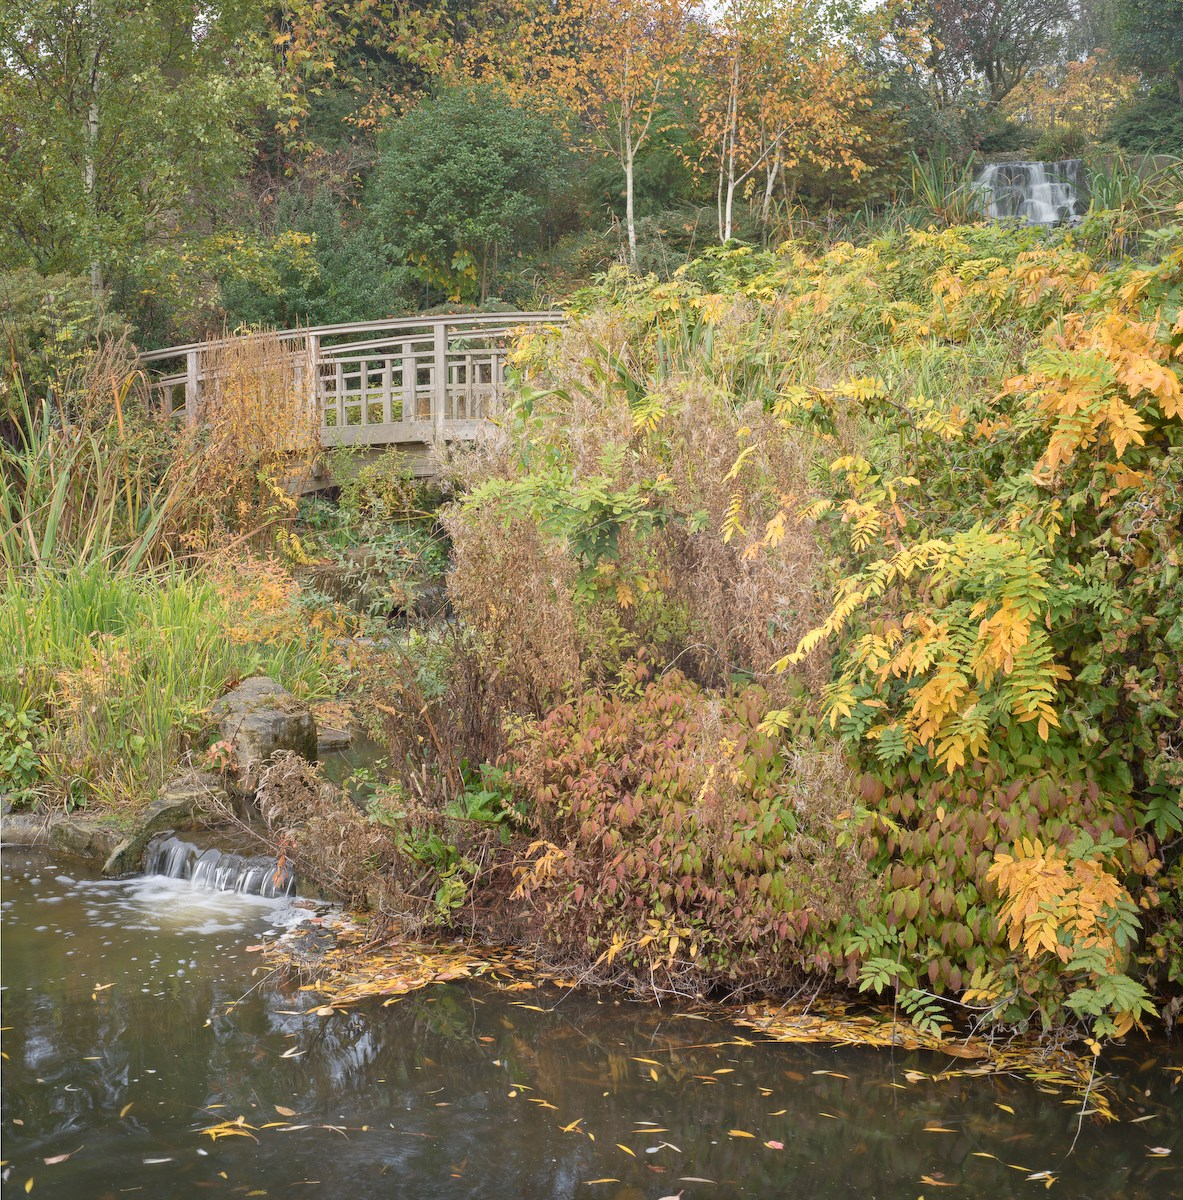 Bridge and Floating Leaves, The Japanese Garden